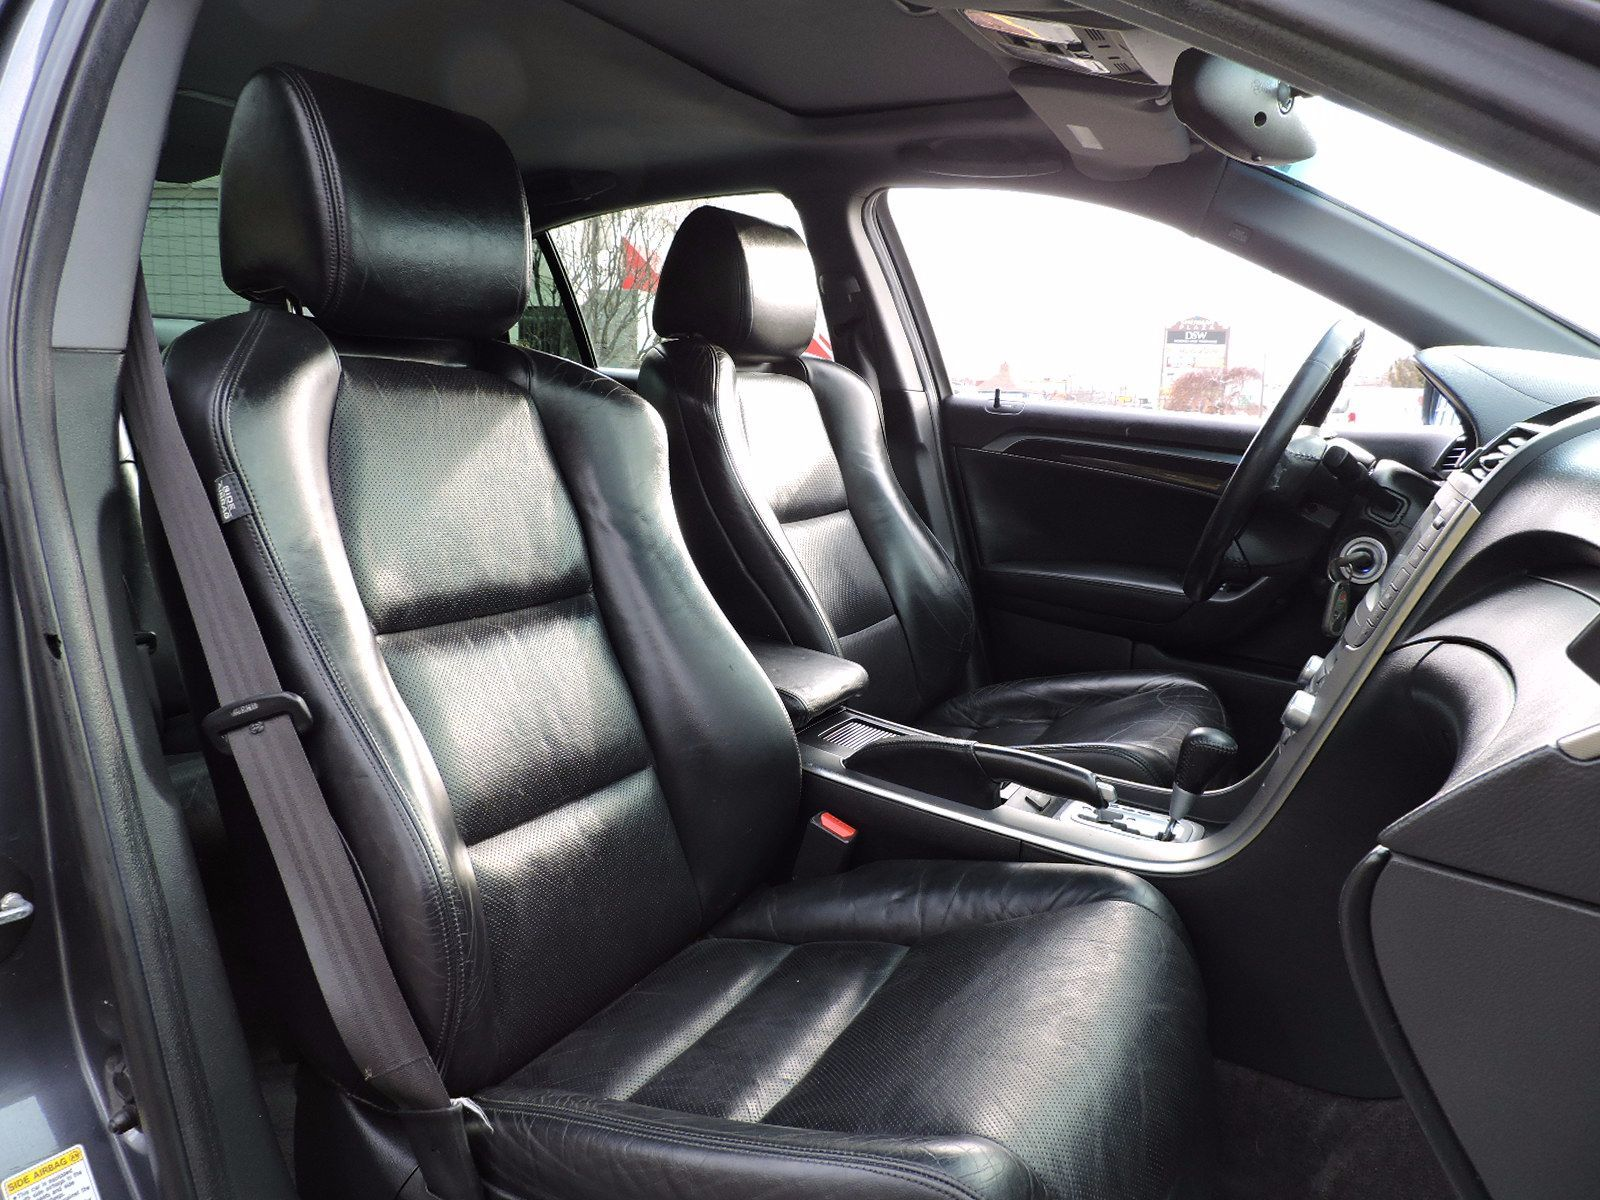 Seat Covers For Acura Tl Velcromag - Acura tl seat covers